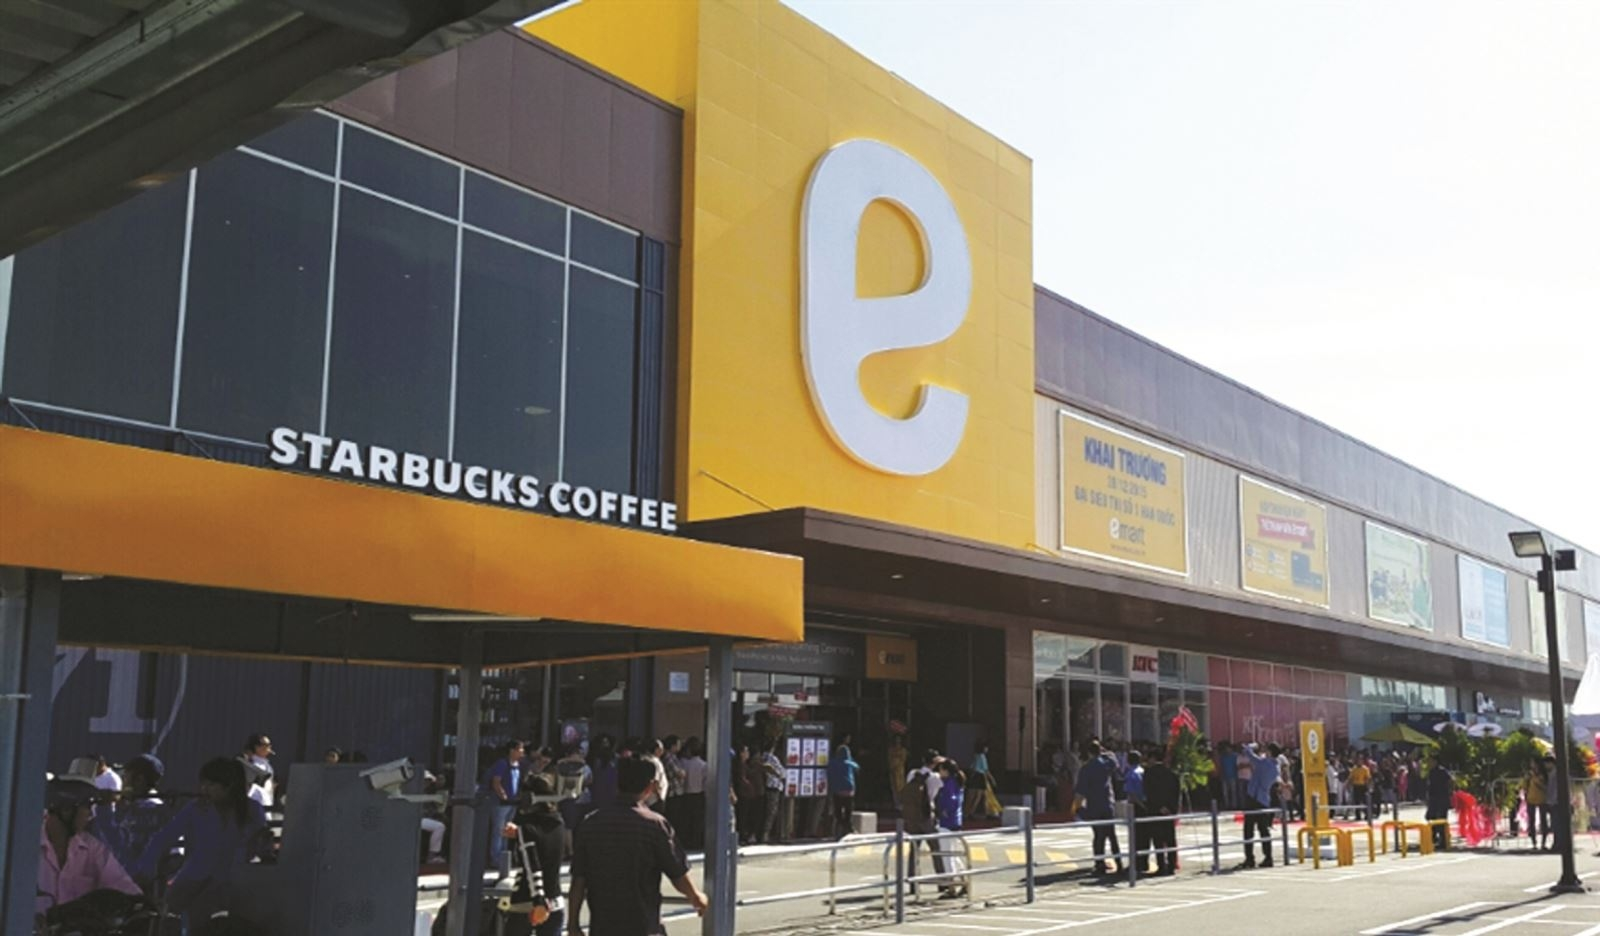 E-mart is quitting the local market to restructure its operations